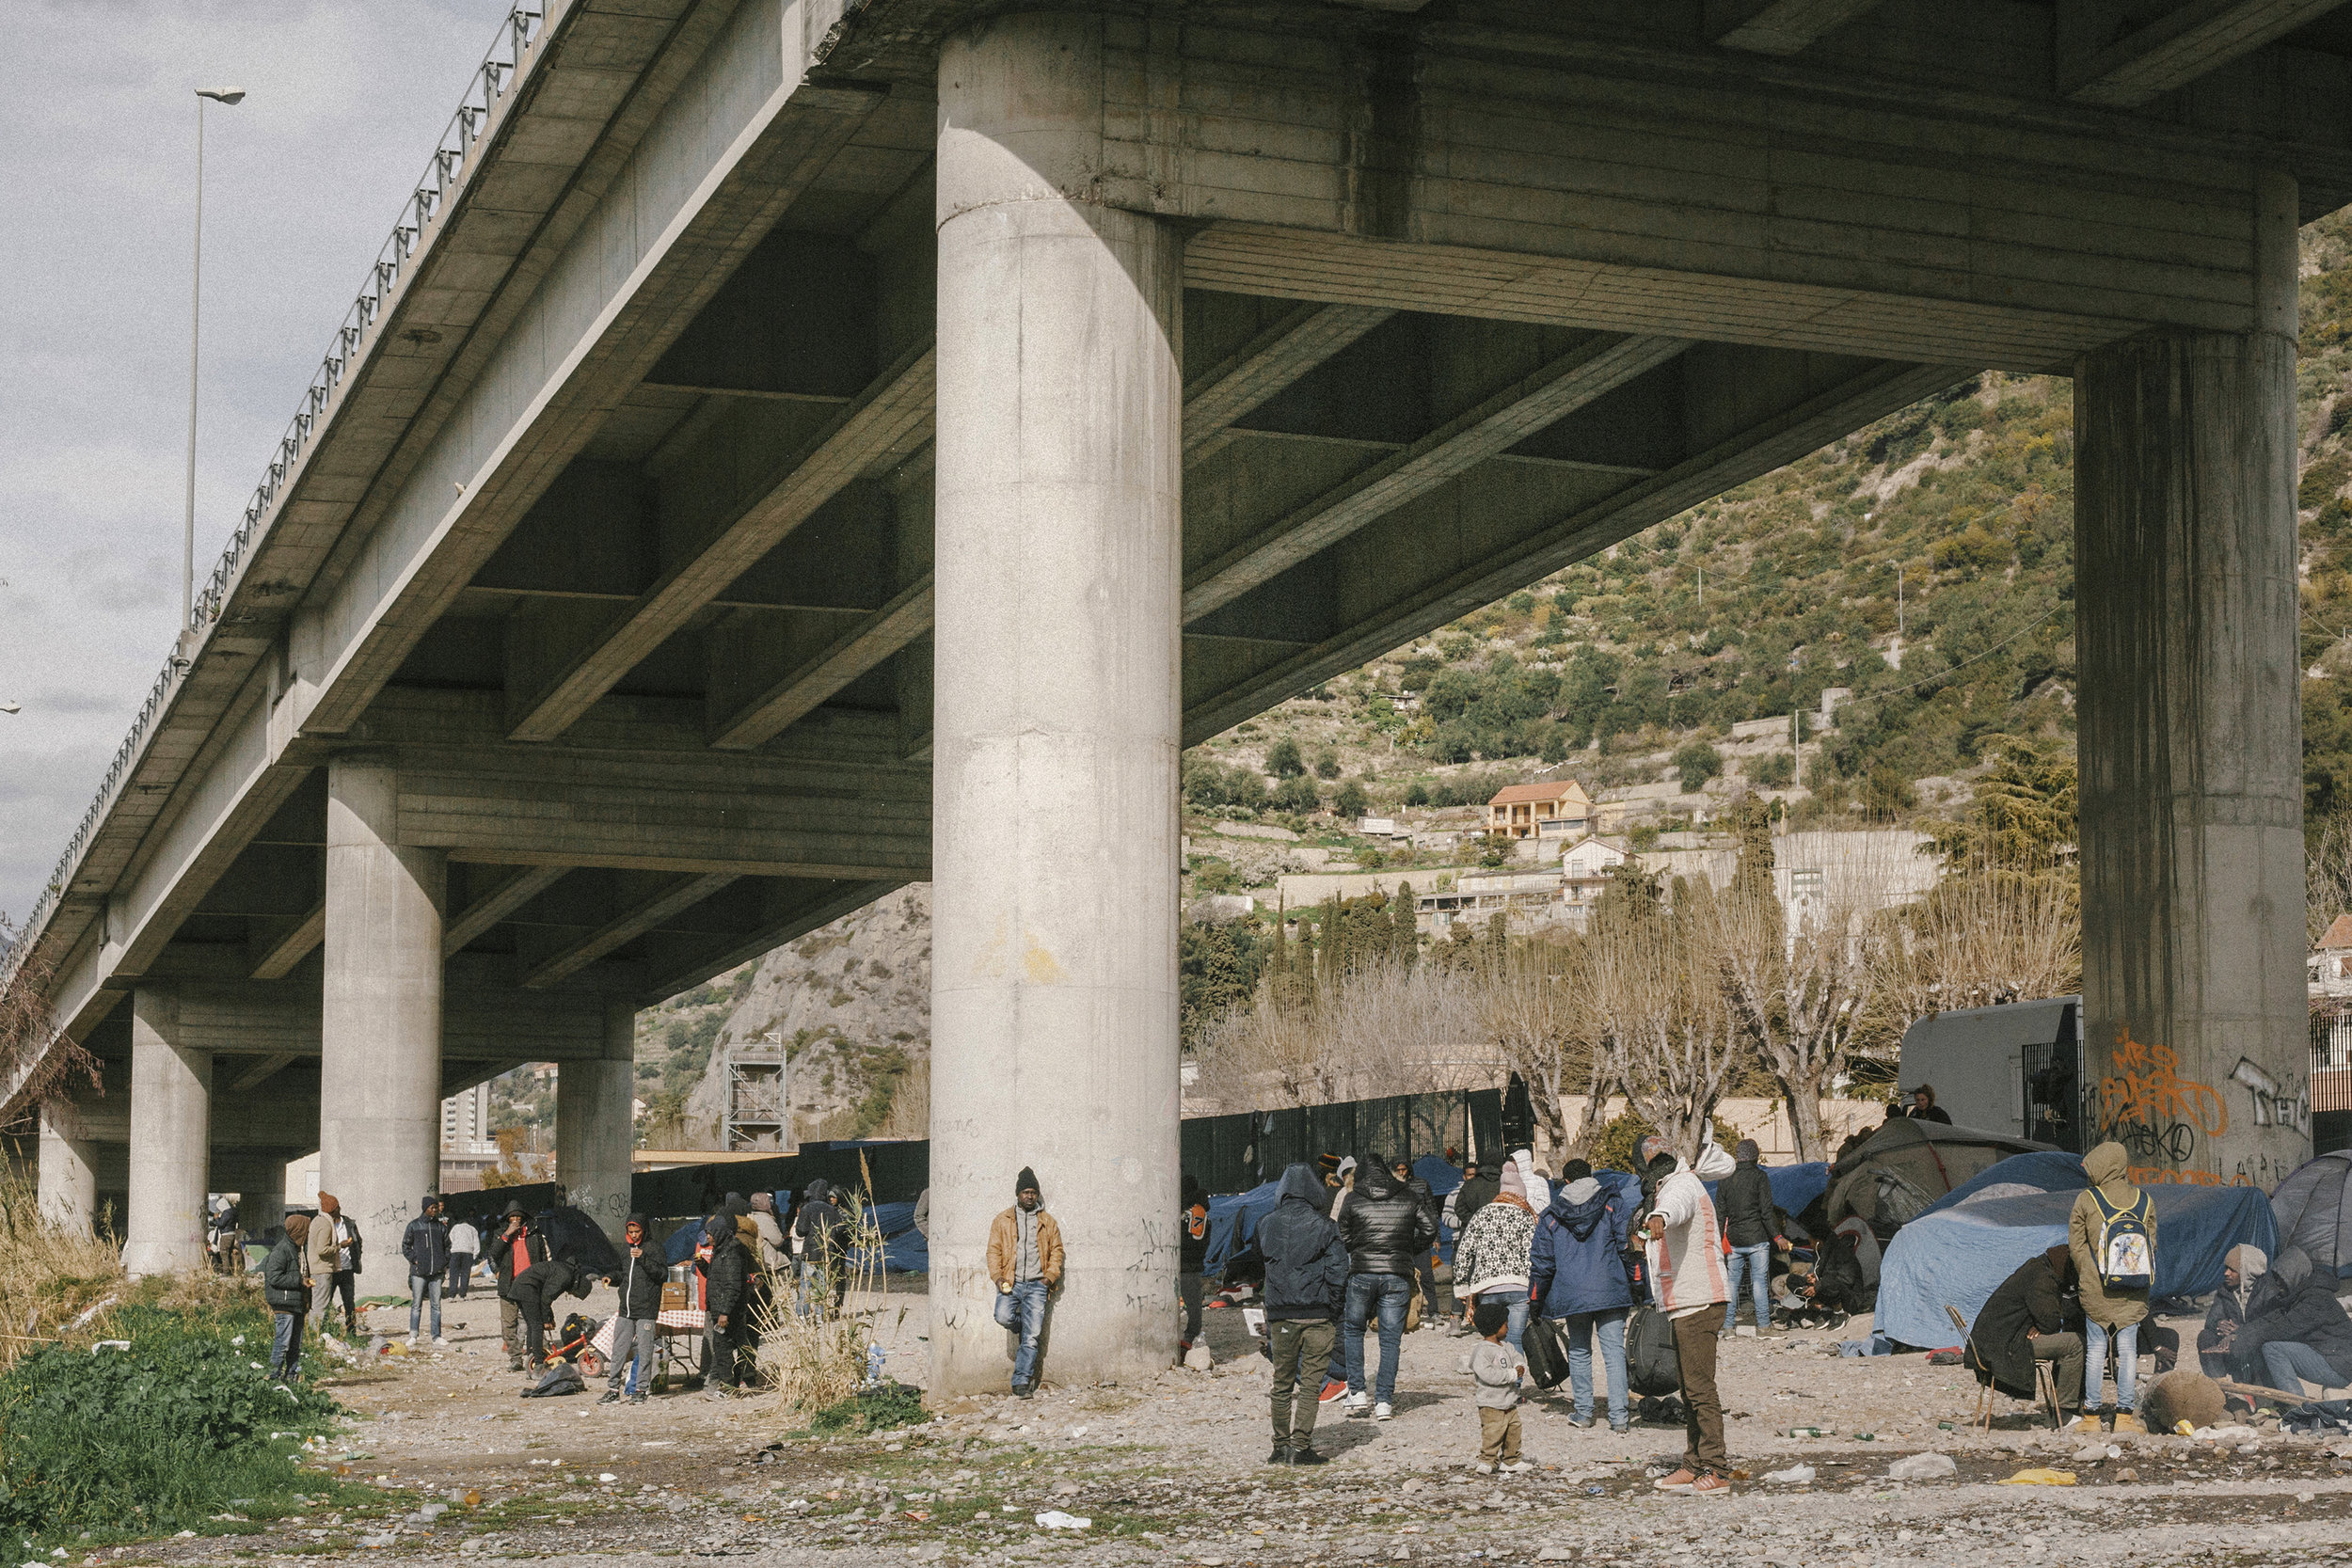 Asylum seekers camped out beneath one of the bridges in Ventimiglia that crosses the Roya River, which runs from the French Alps to the Mediterranean coast.  Photograph: Tjaša Kalkan for Point.51